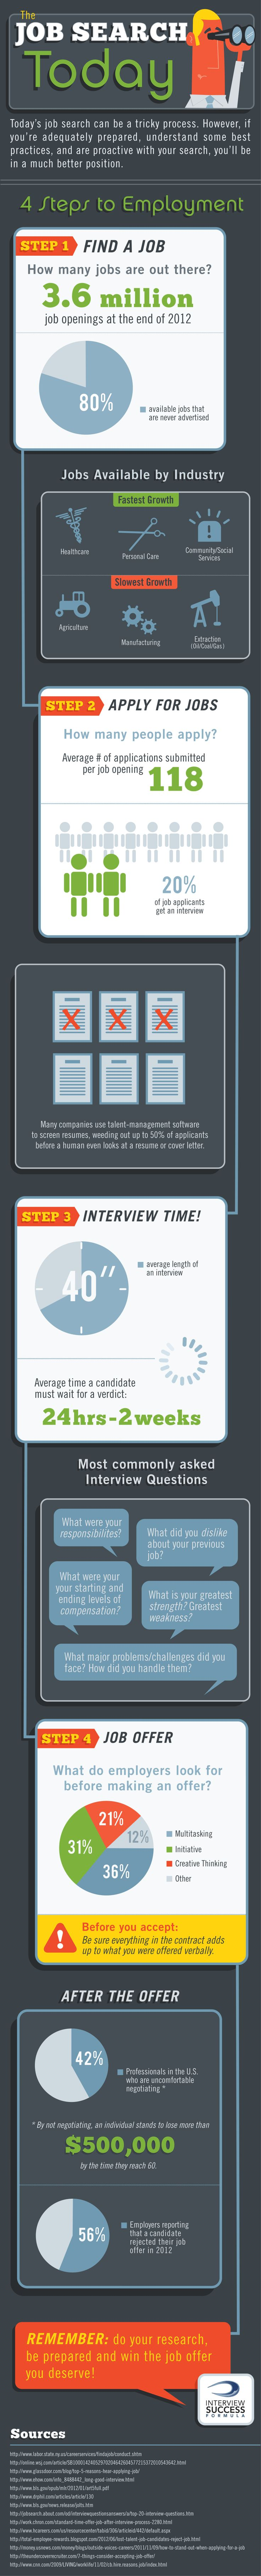 best images about your job search designed this infographic compiled by interview success formula a program that helps job seekers to